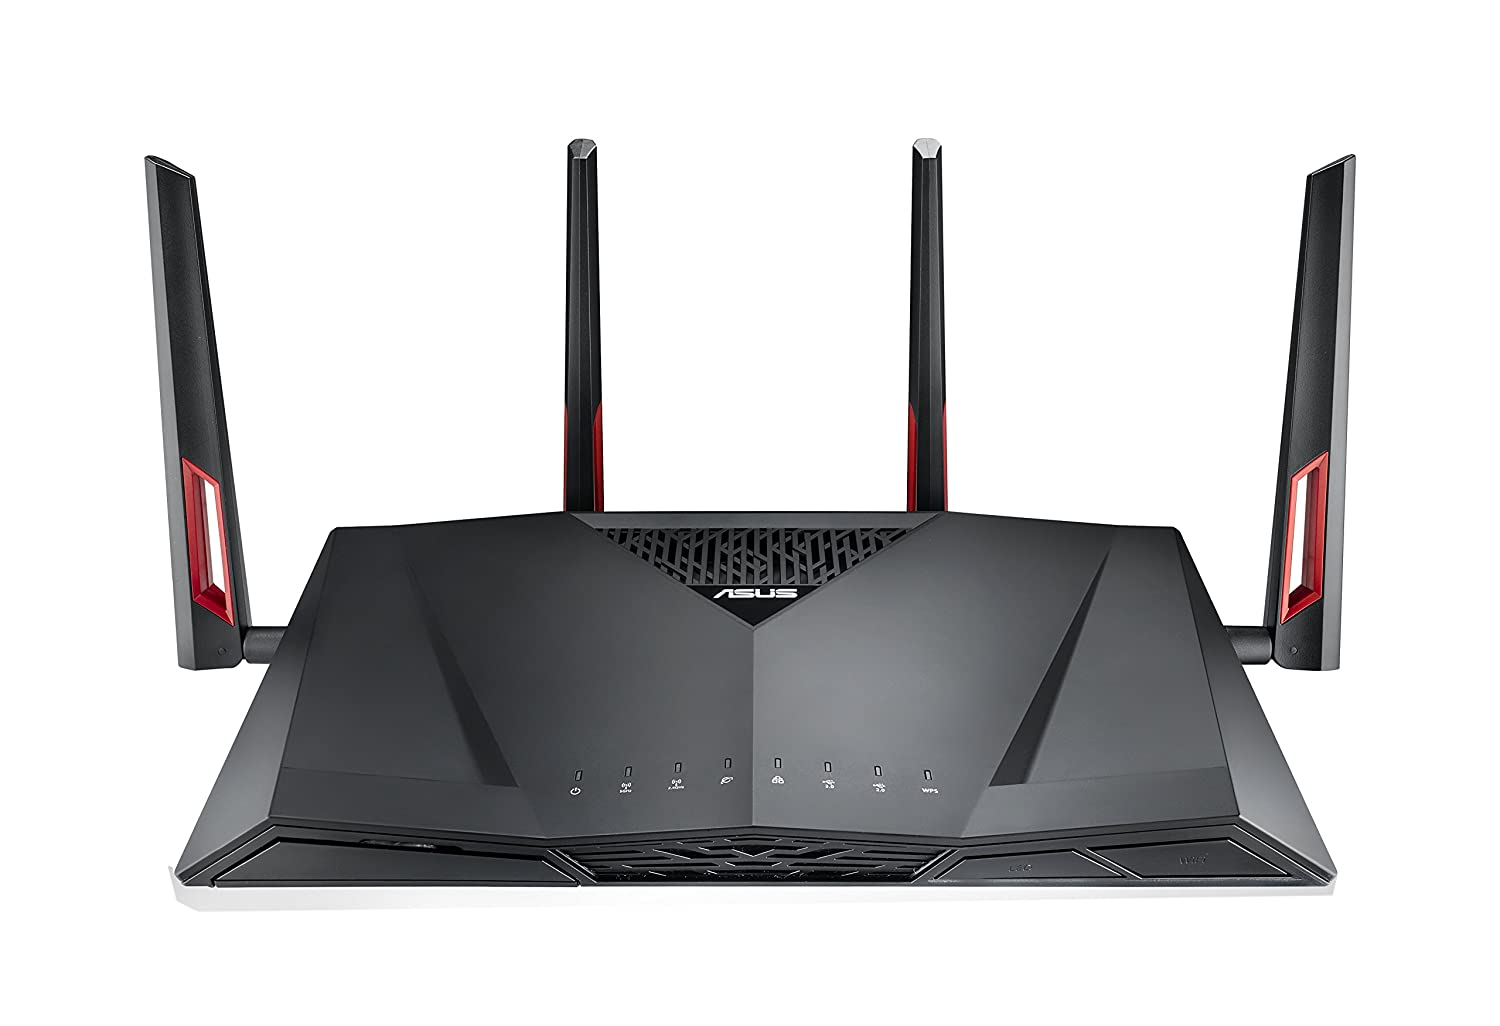 Asus RT-AC88U Dual-Band Gaming Router Black Friday Deal 2019